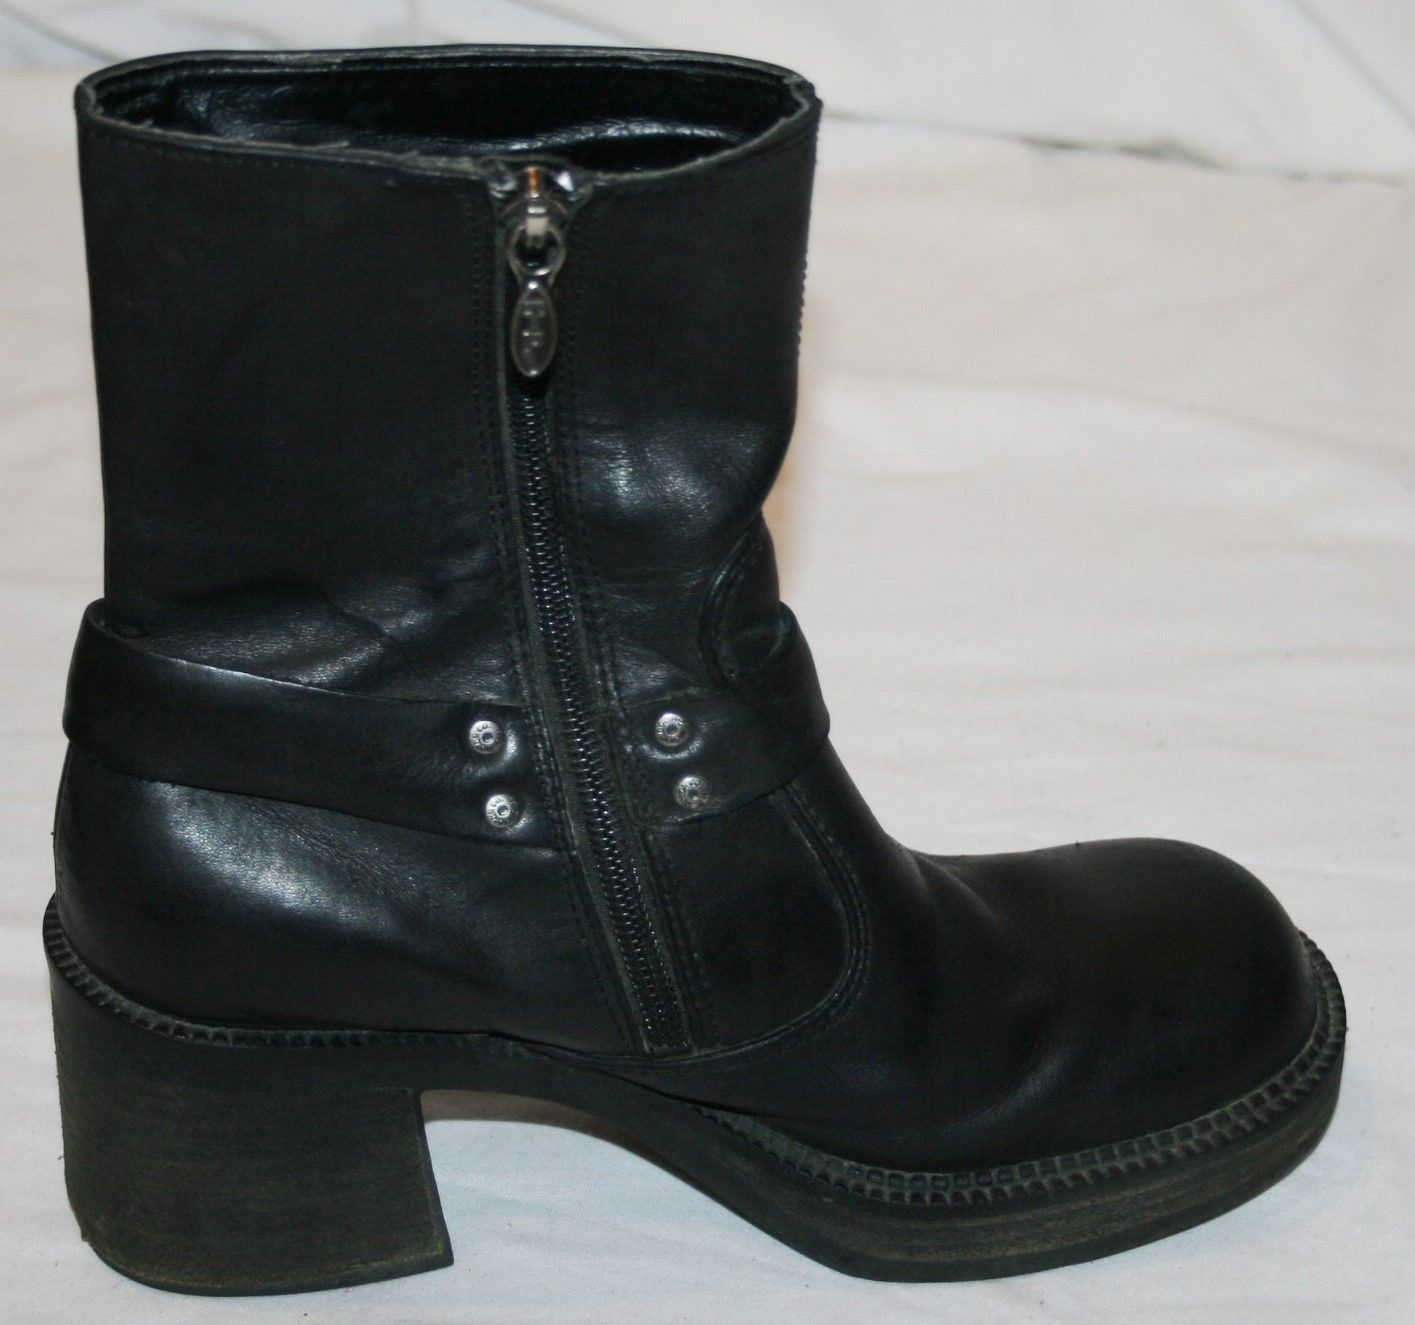 70bda3d0eb13 Harley Davidson Black Leather Ankle Boots and 32 similar items. 57